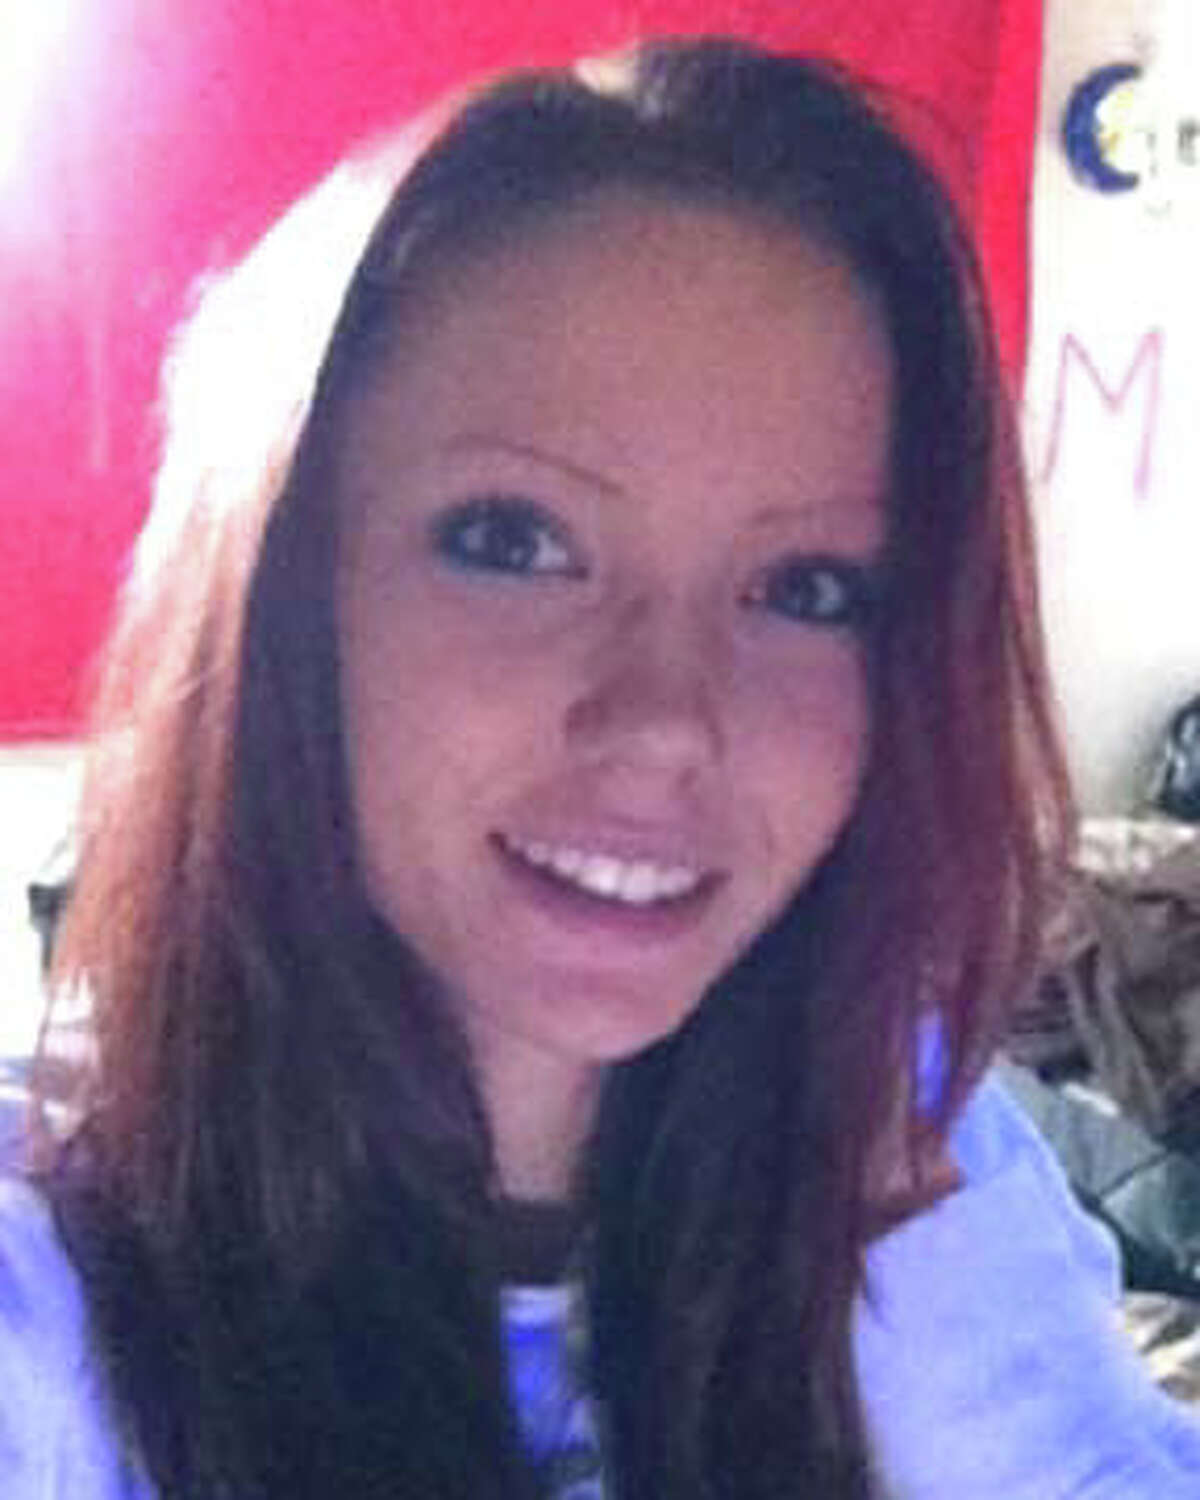 Mikayla Davis, 16, went missing June 27, 2012, from a Kennewick home. She goes by